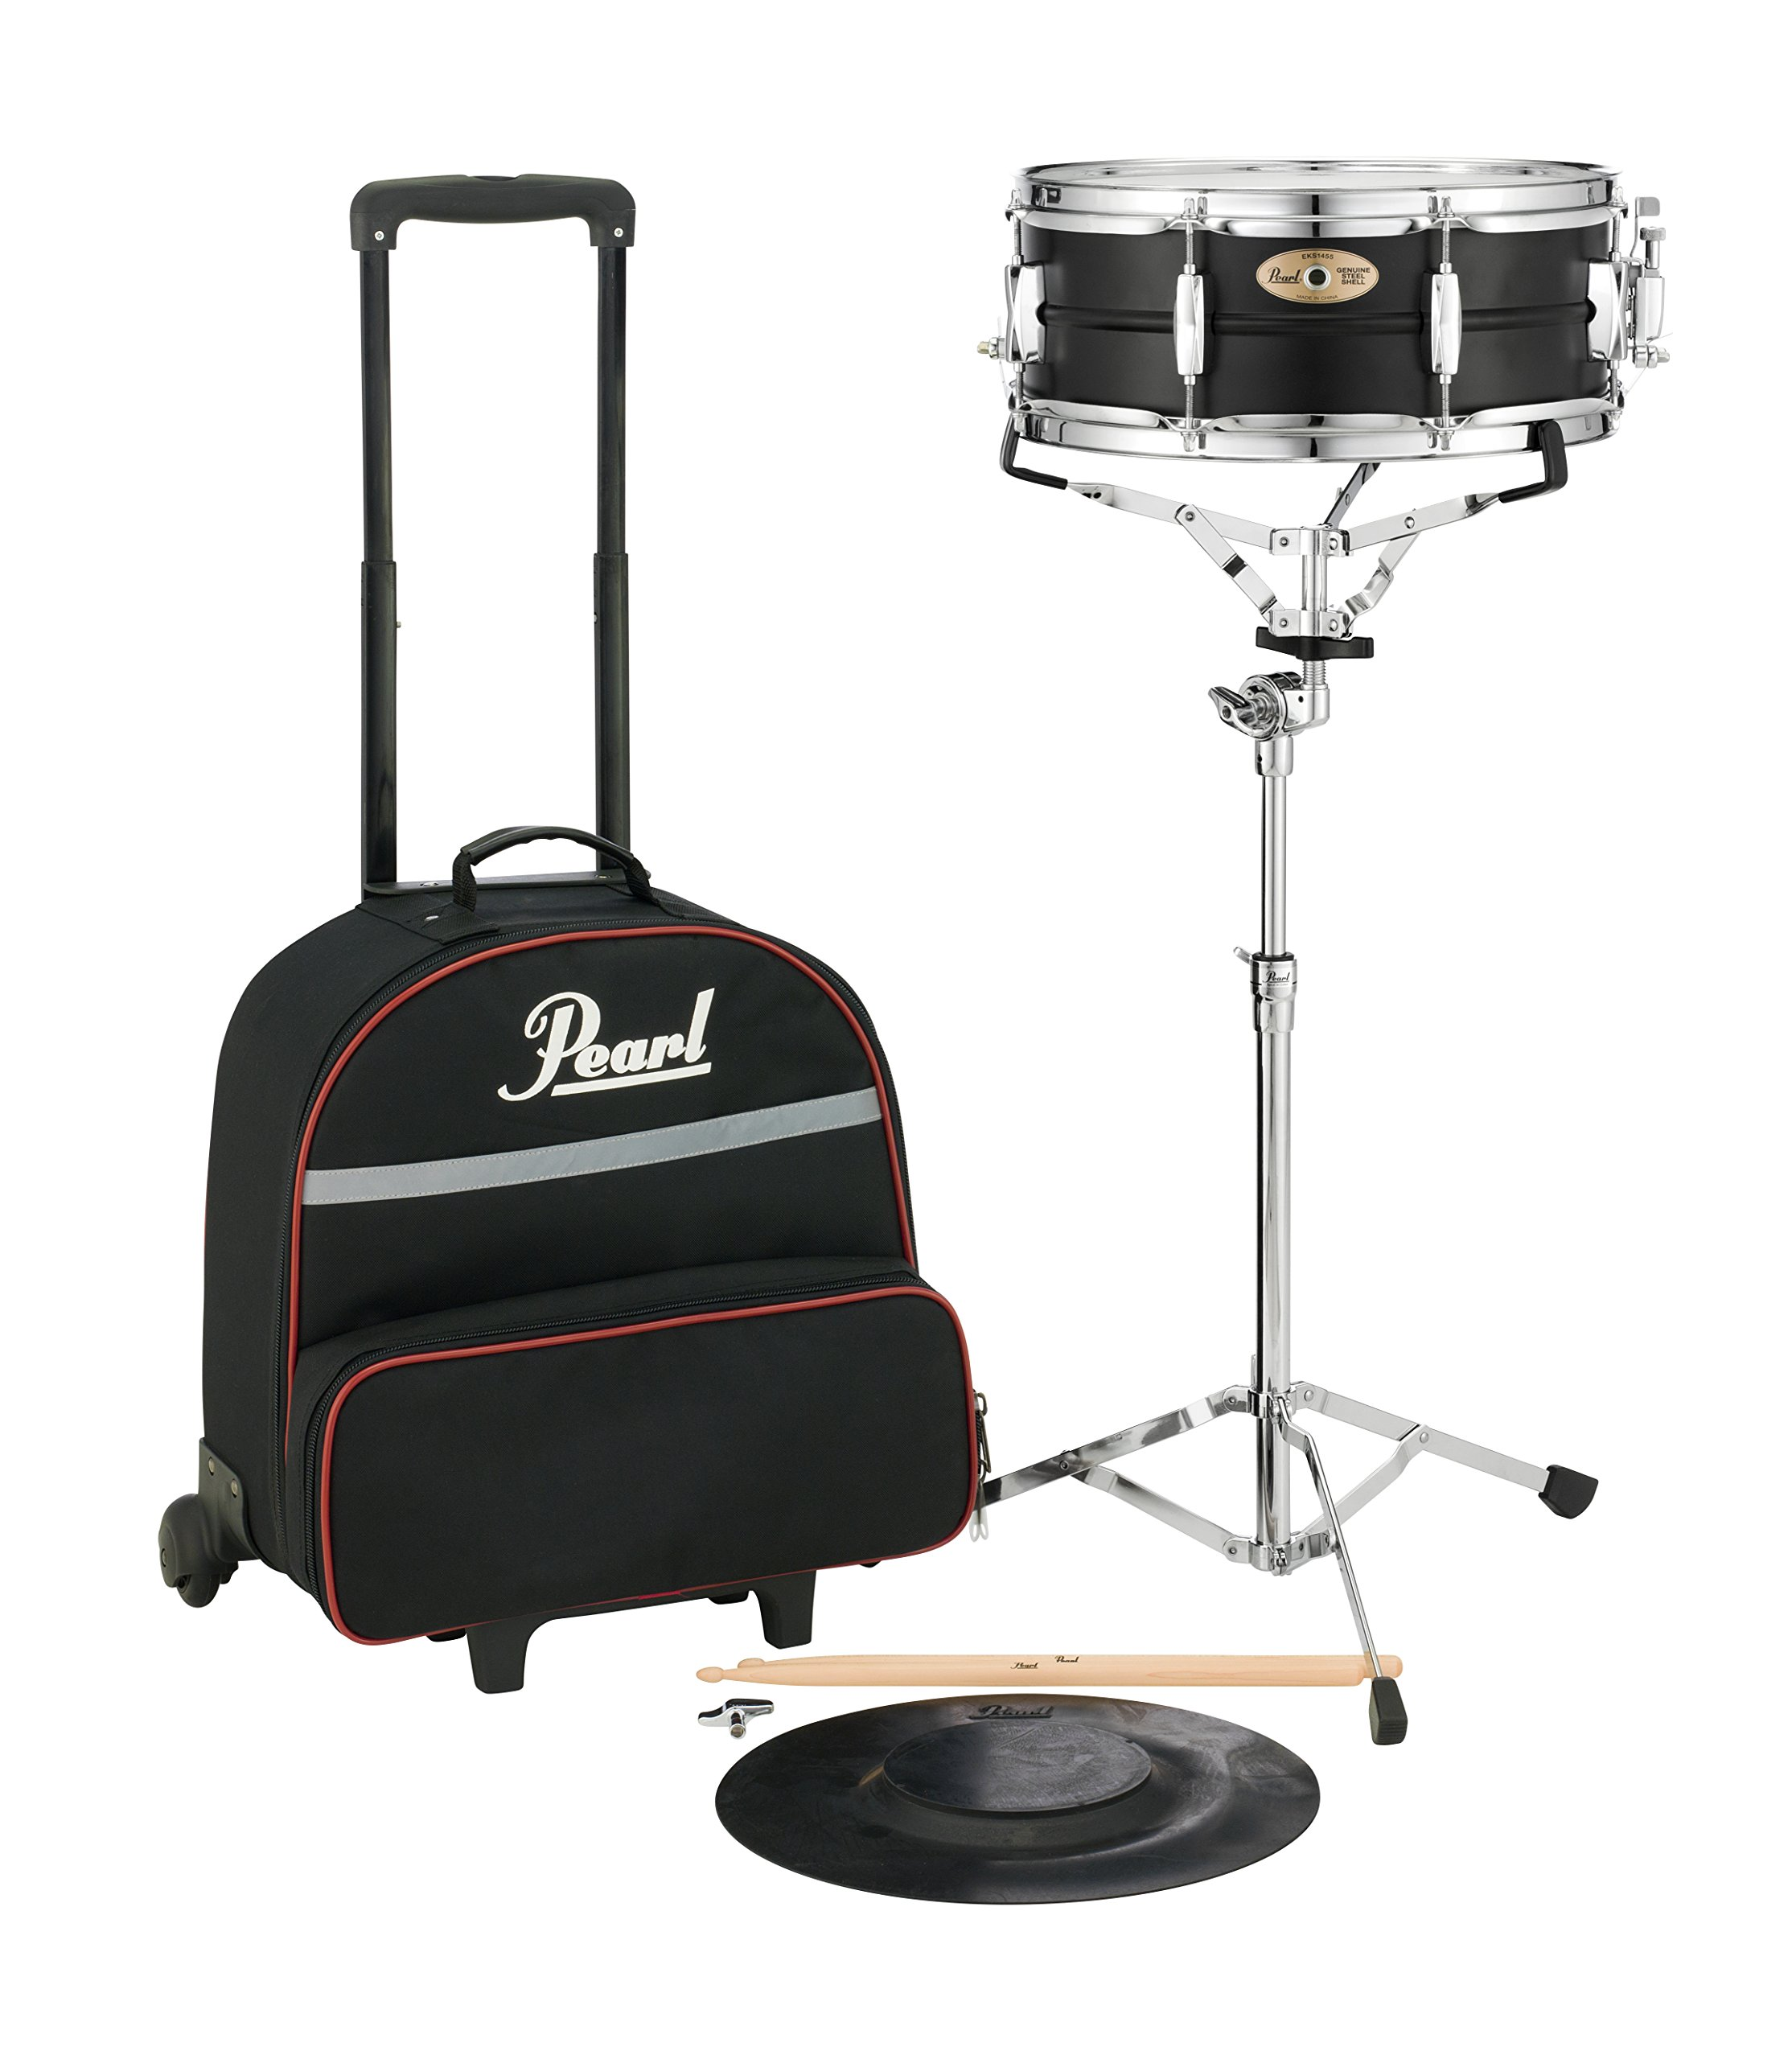 Pearl Snare Drum (SK910C) by Pearl